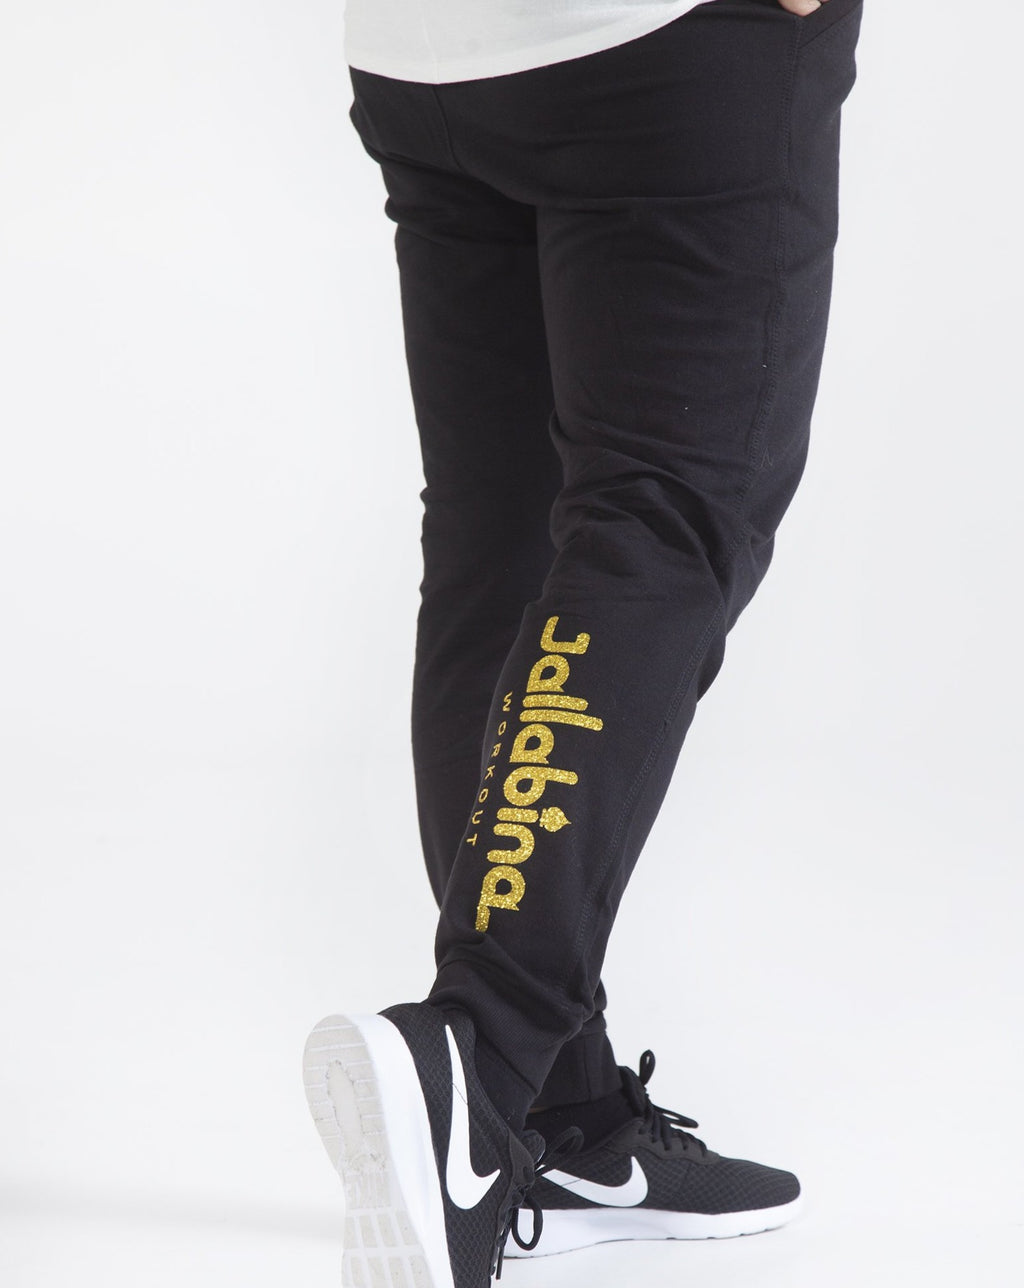 Sweatpants - Black, Red